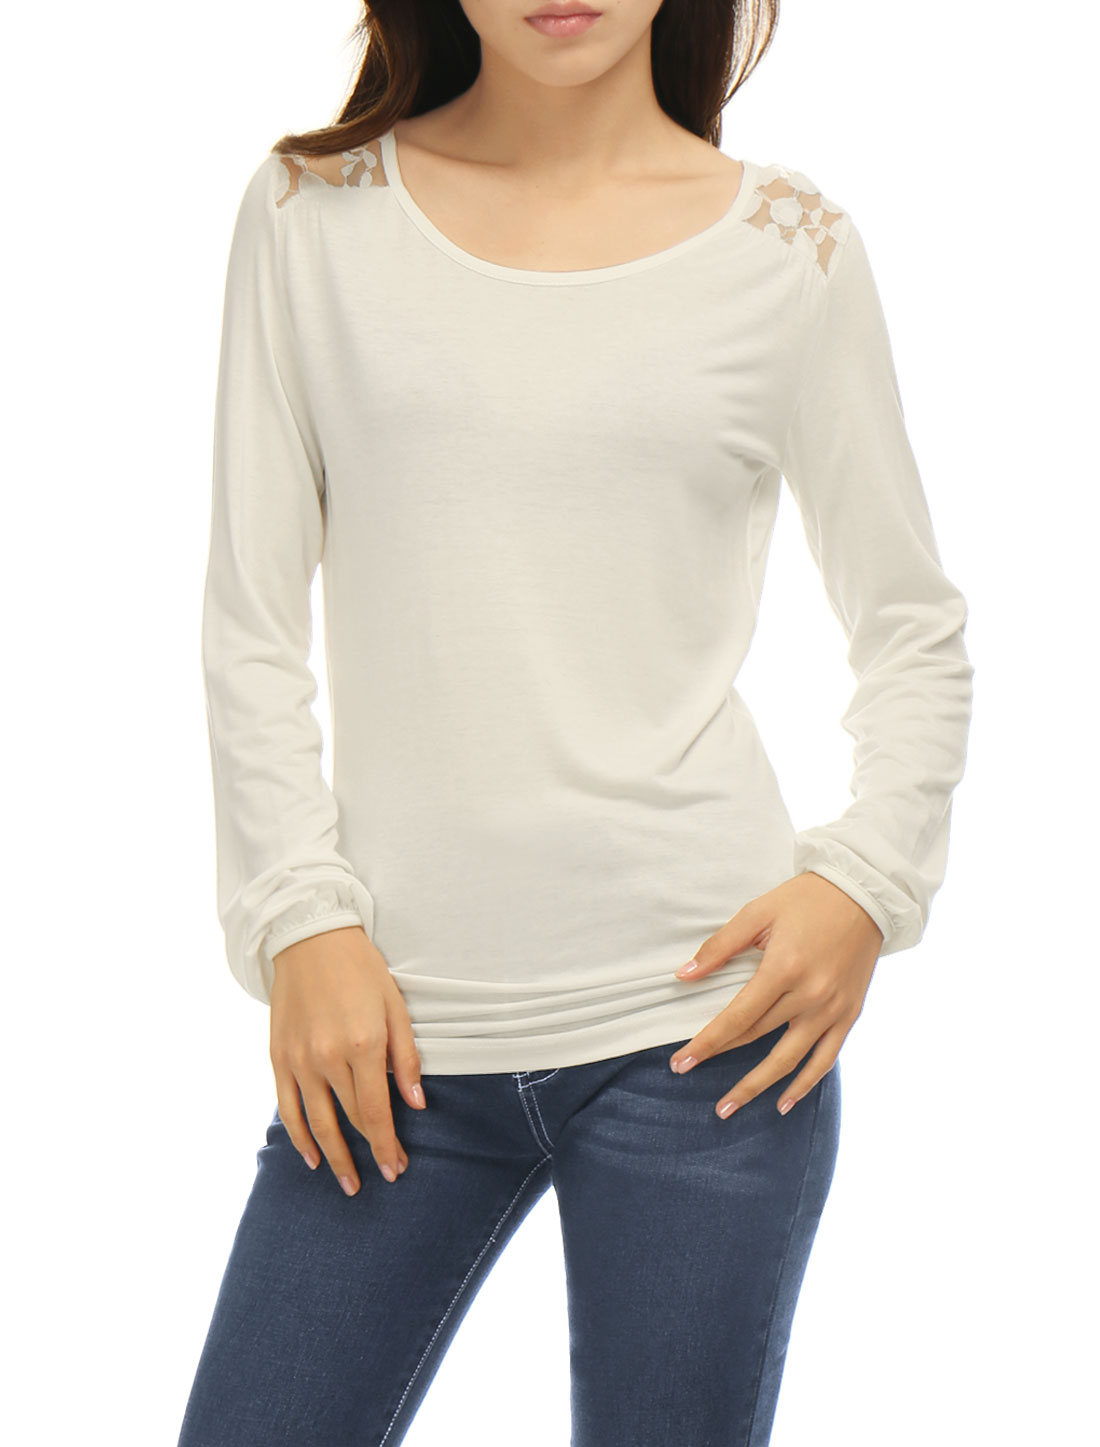 Allegra K Woman Long Sleeves Scoop Neck Lace Panel Back Top White L